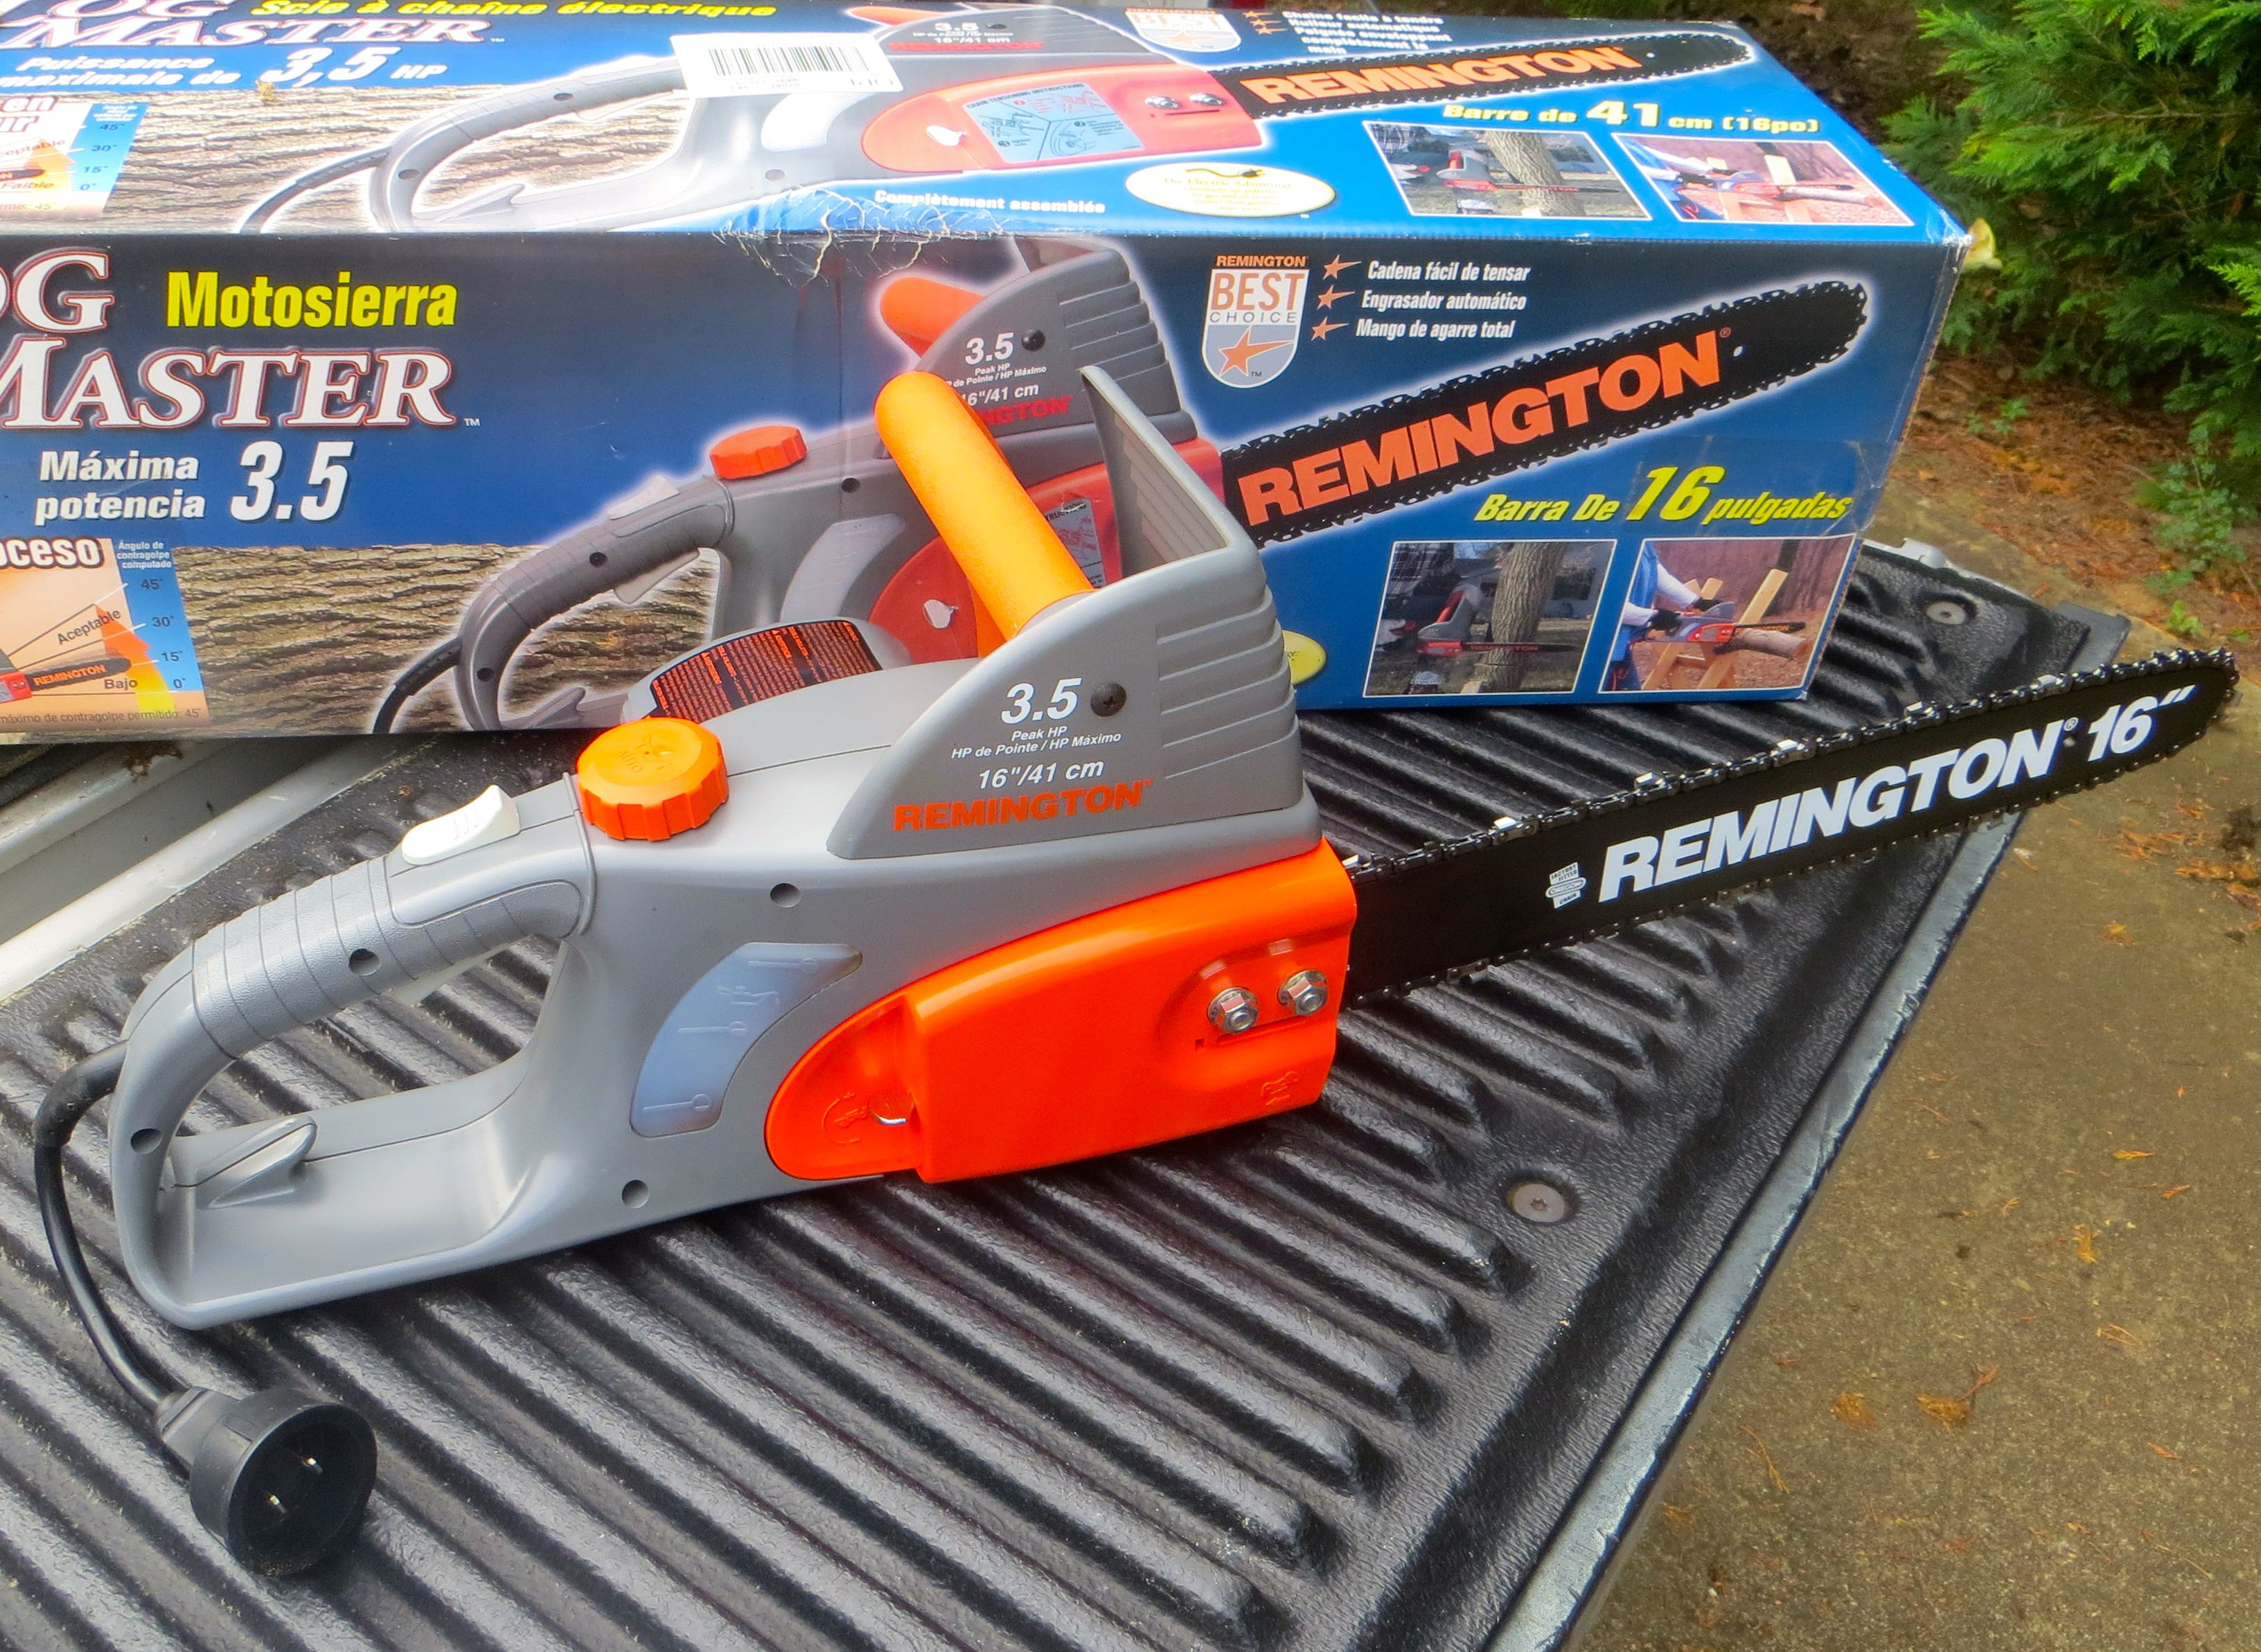 Consider This Before Purchasing an Electric Chainsaw